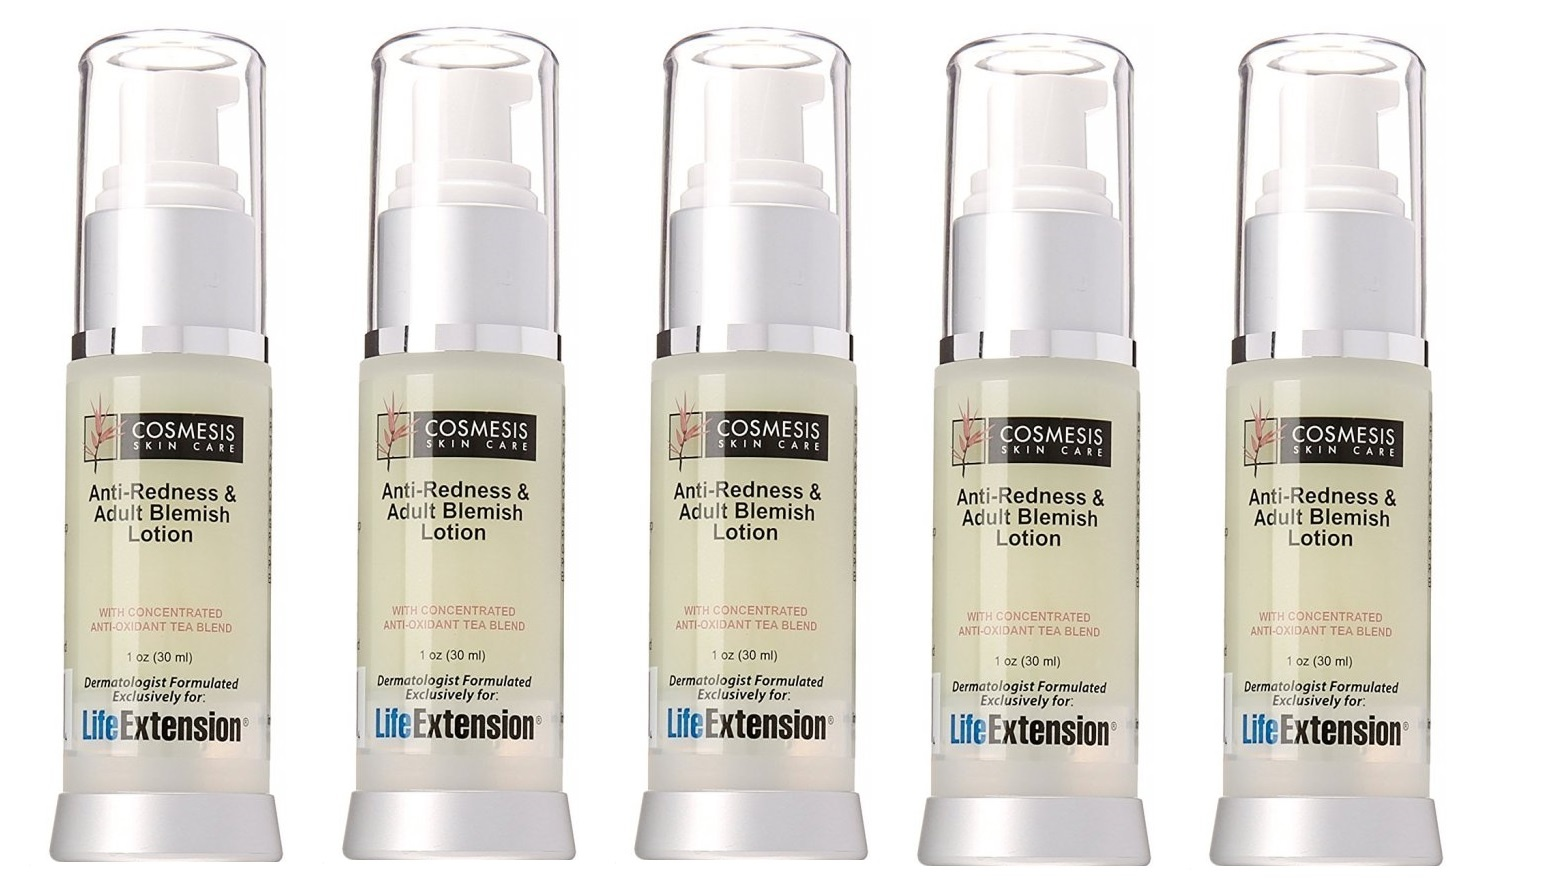 Life Extension Anti-Redness and Blemish Lotion, 1 Oz., 5-pack